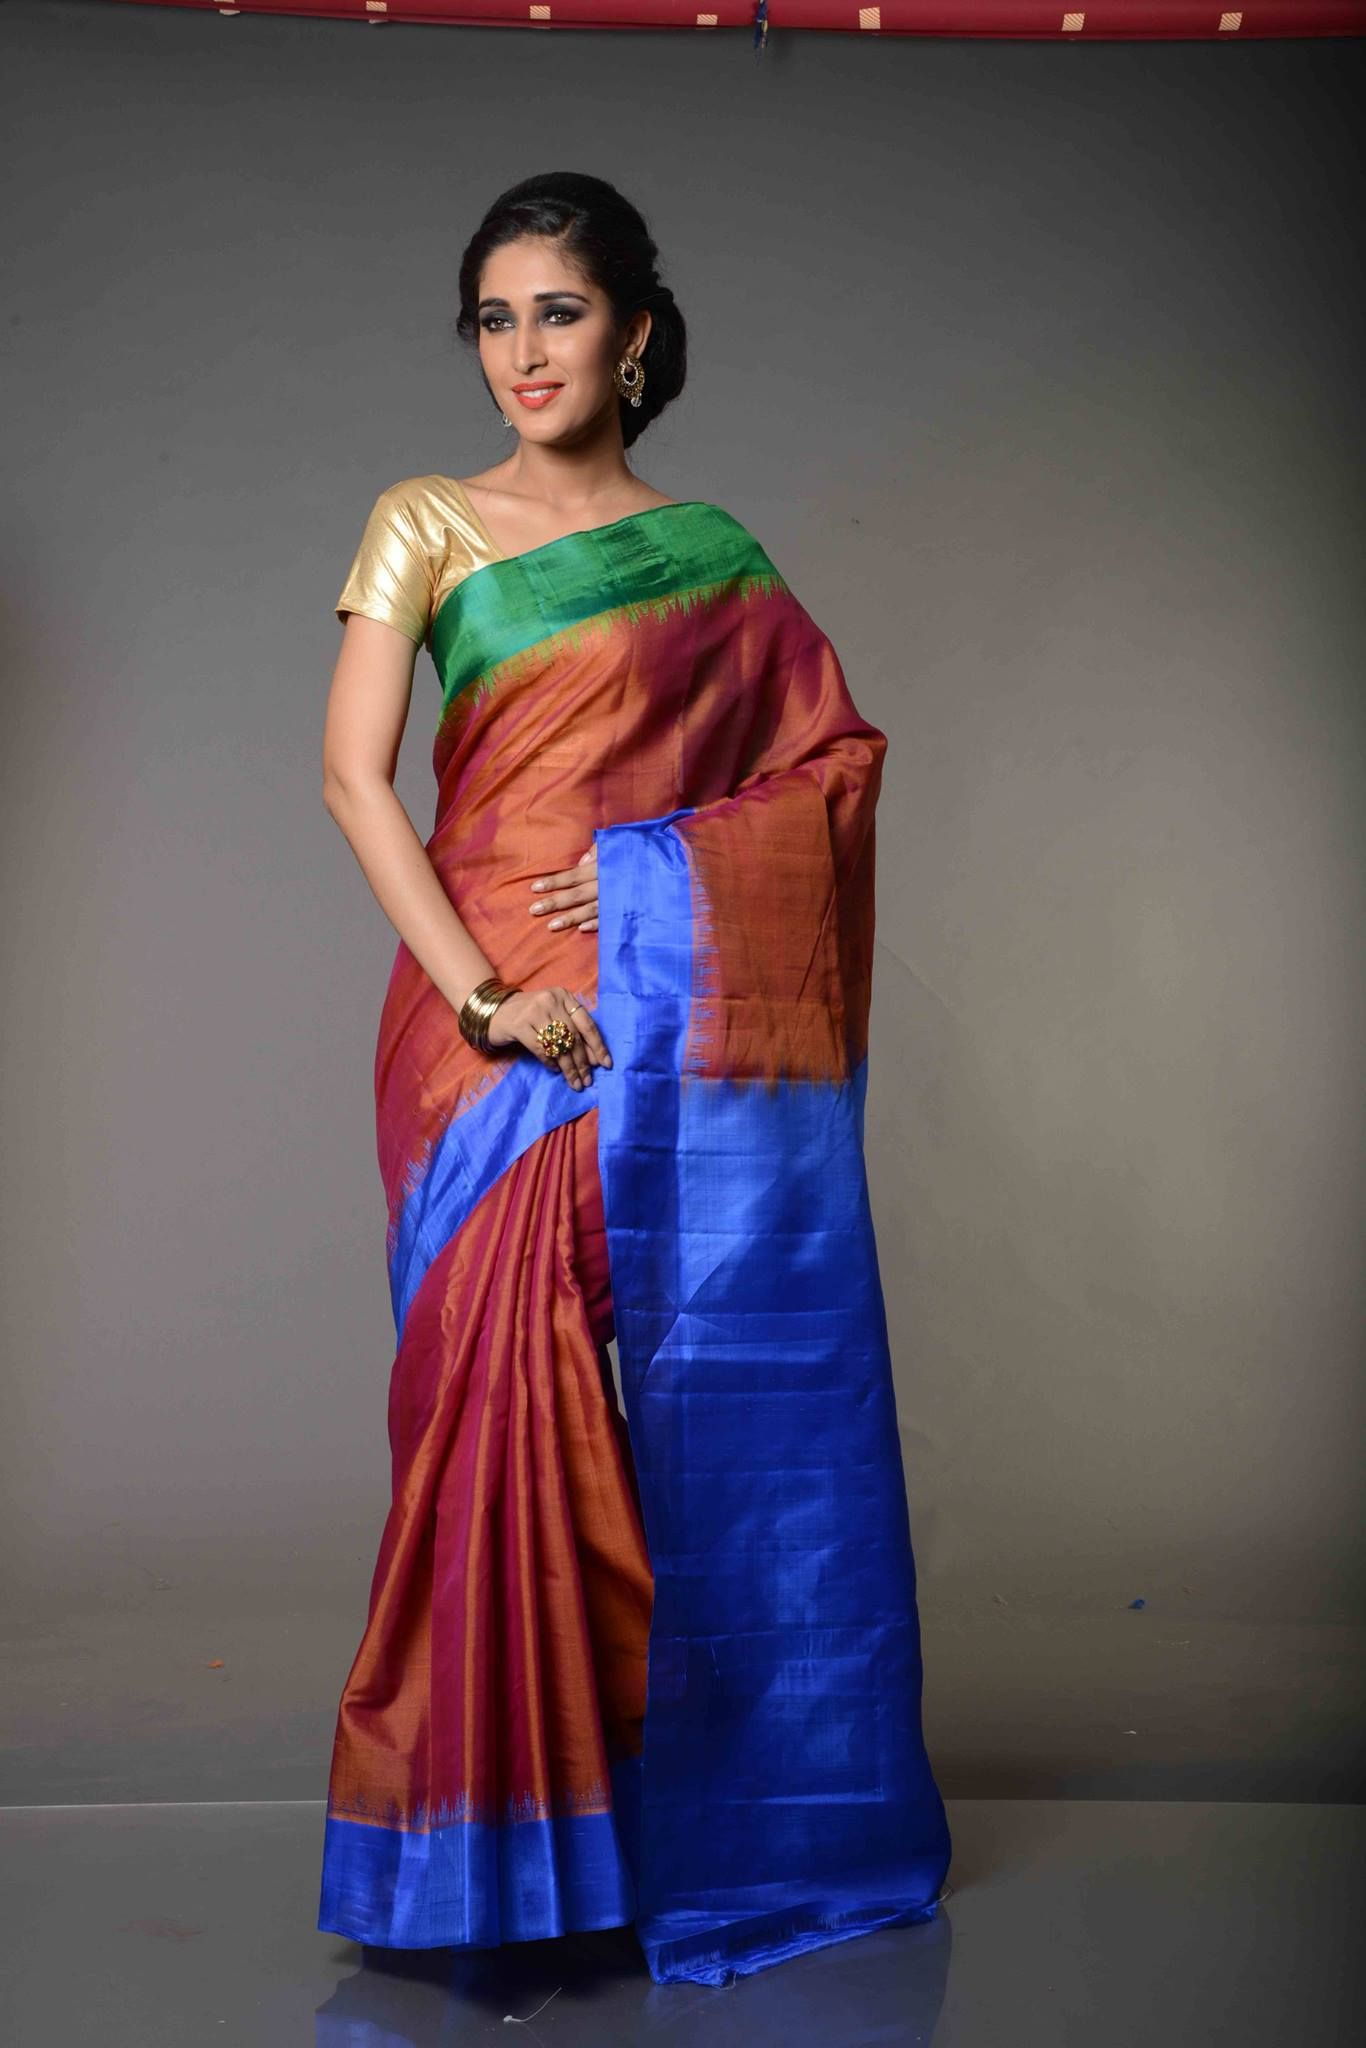 Divya Rustic Tri Color Unadorned Plain Gadwal Silk Cotton Saree Very Unlike The Family Of Sarees Where It Belongs Plainly A Beautiful